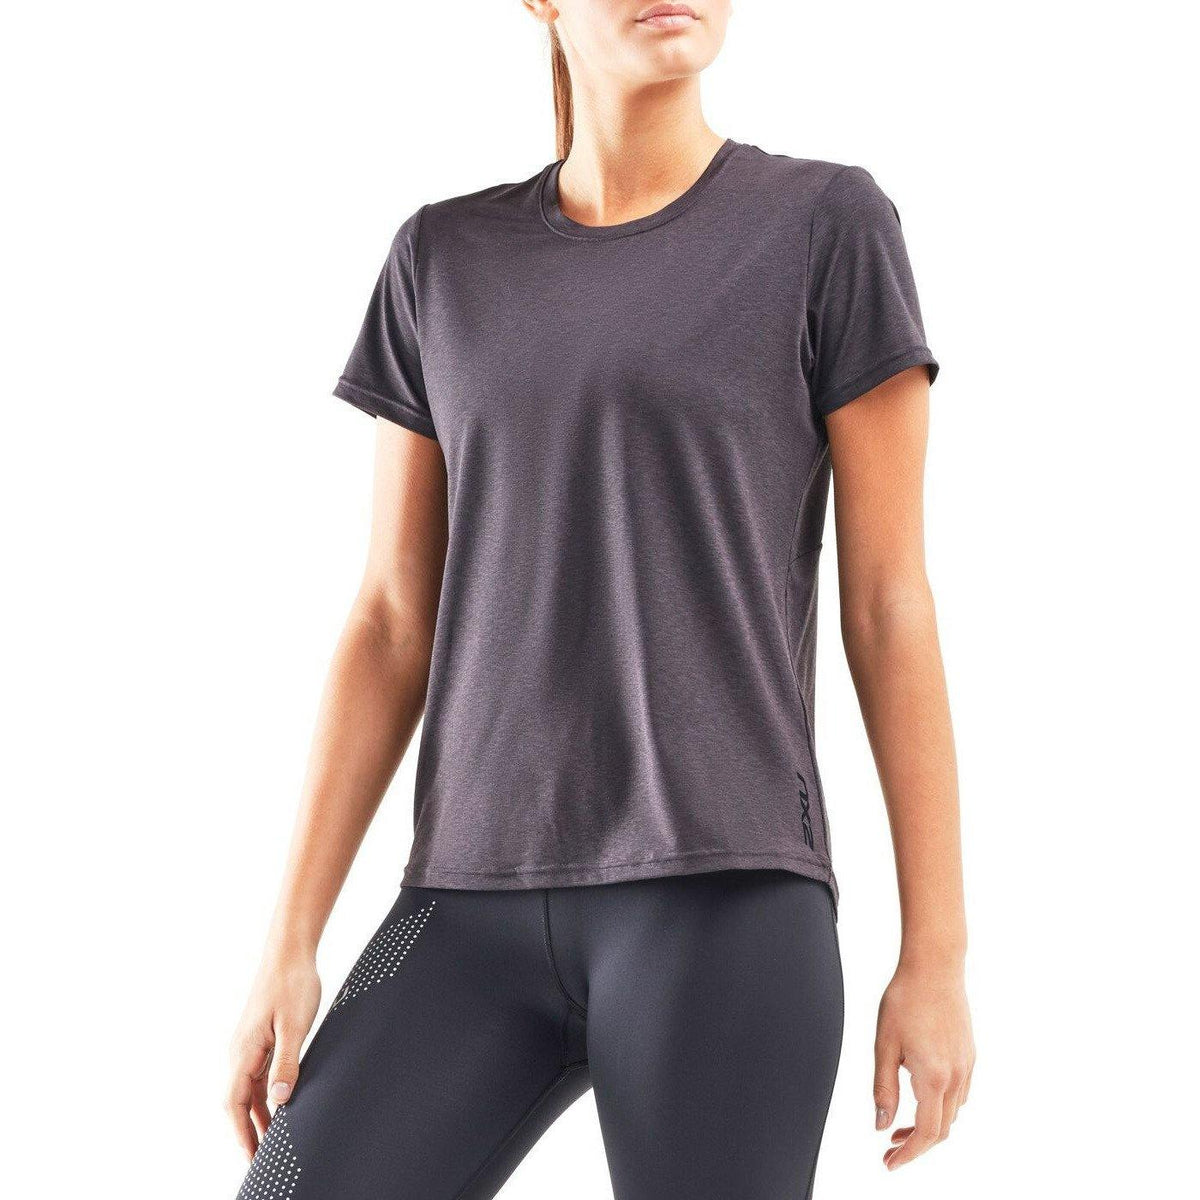 2XU Womens XCTRL T-Shirt